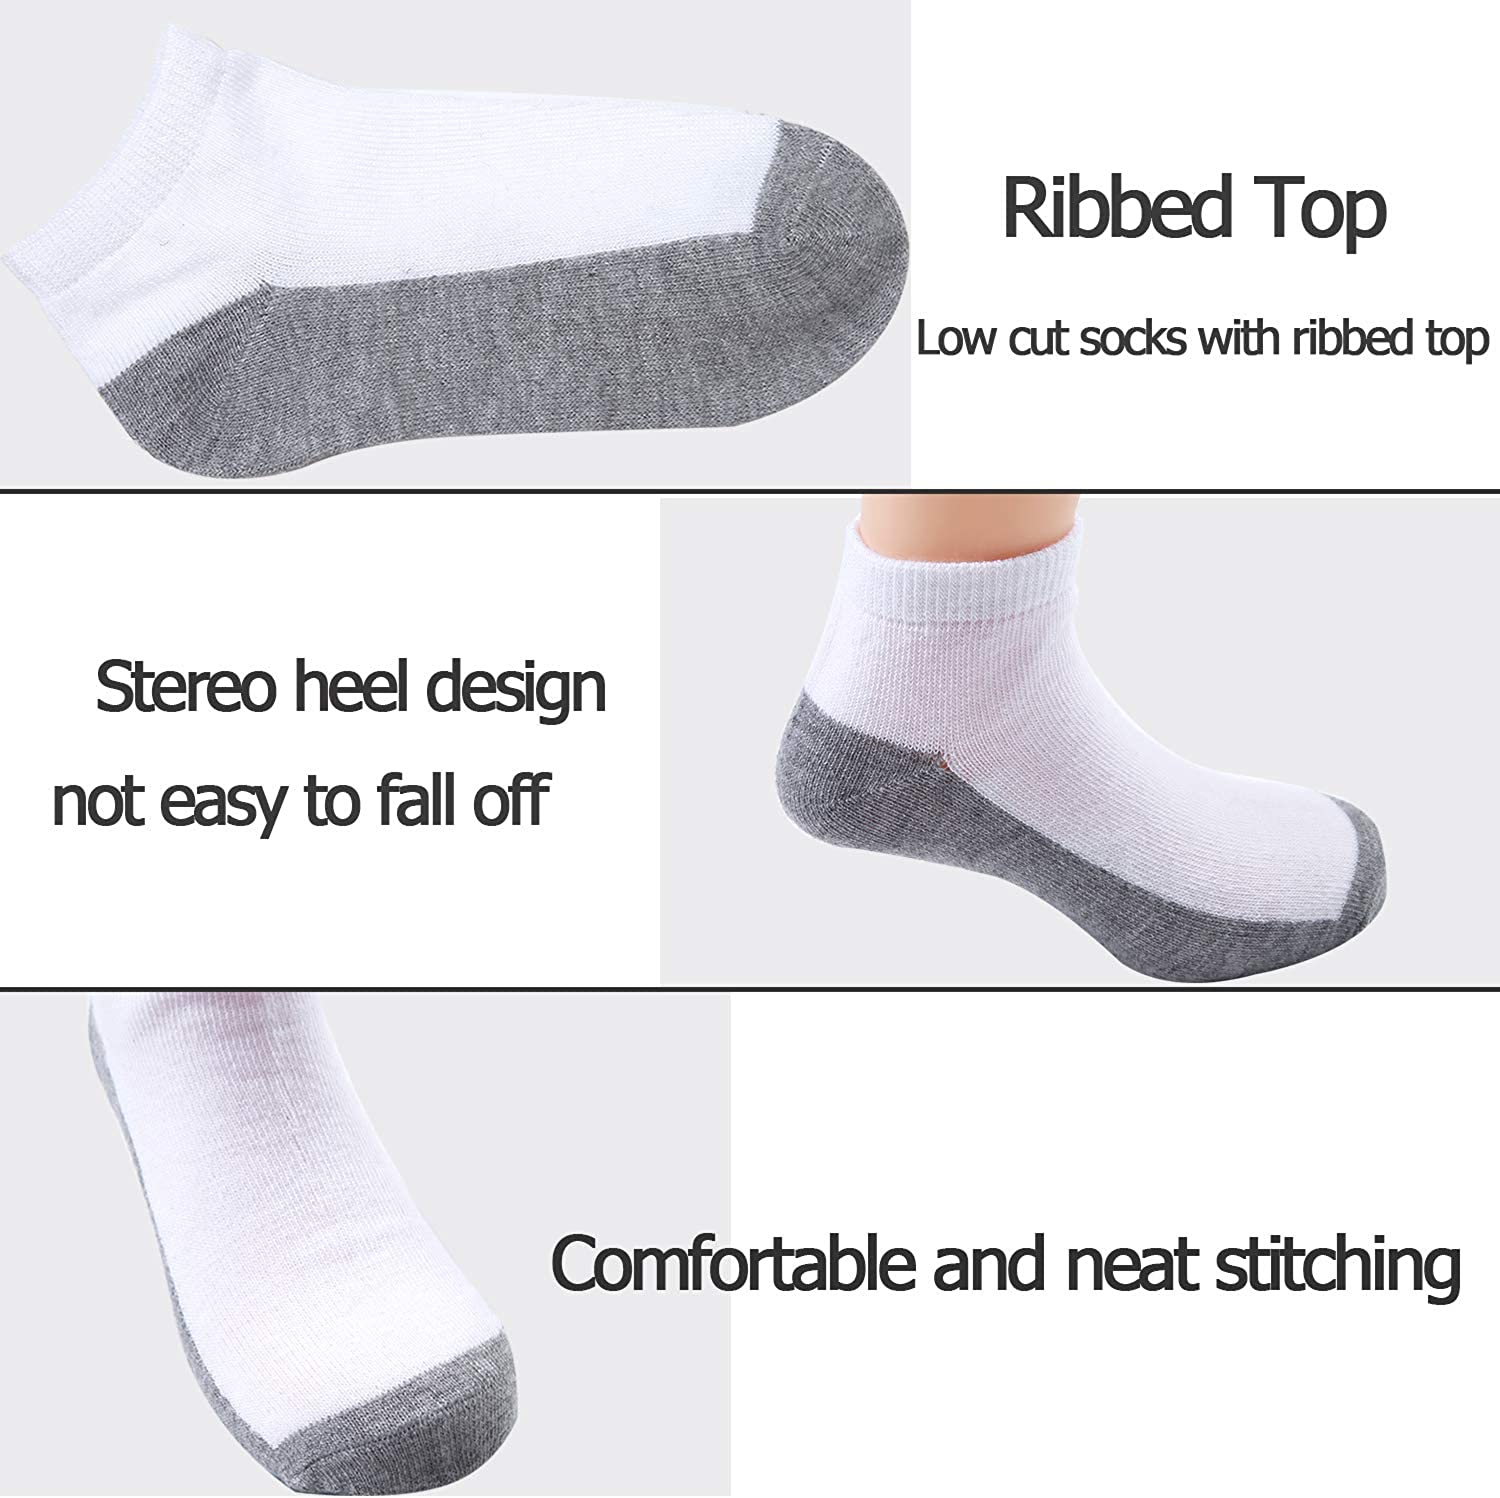 Coobey 15 Pack Kids Half Cushion Low Cut Athletic Ankle Socks Boys Girls Ankle Socks